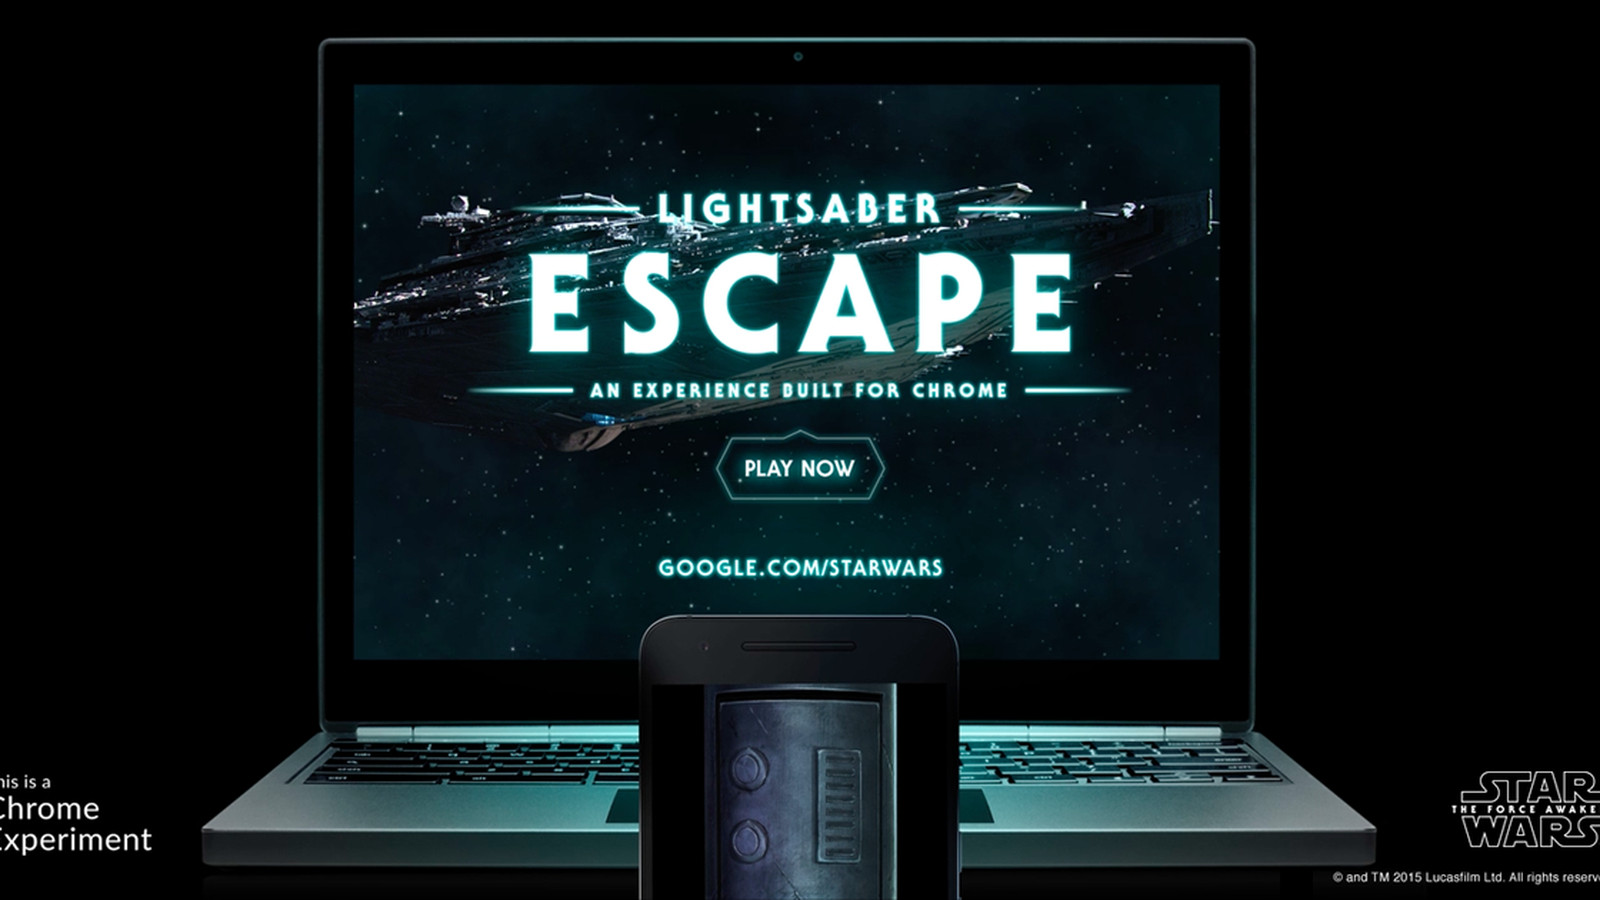 Google Made A Star Wars Game That Turns Your Phone Into A